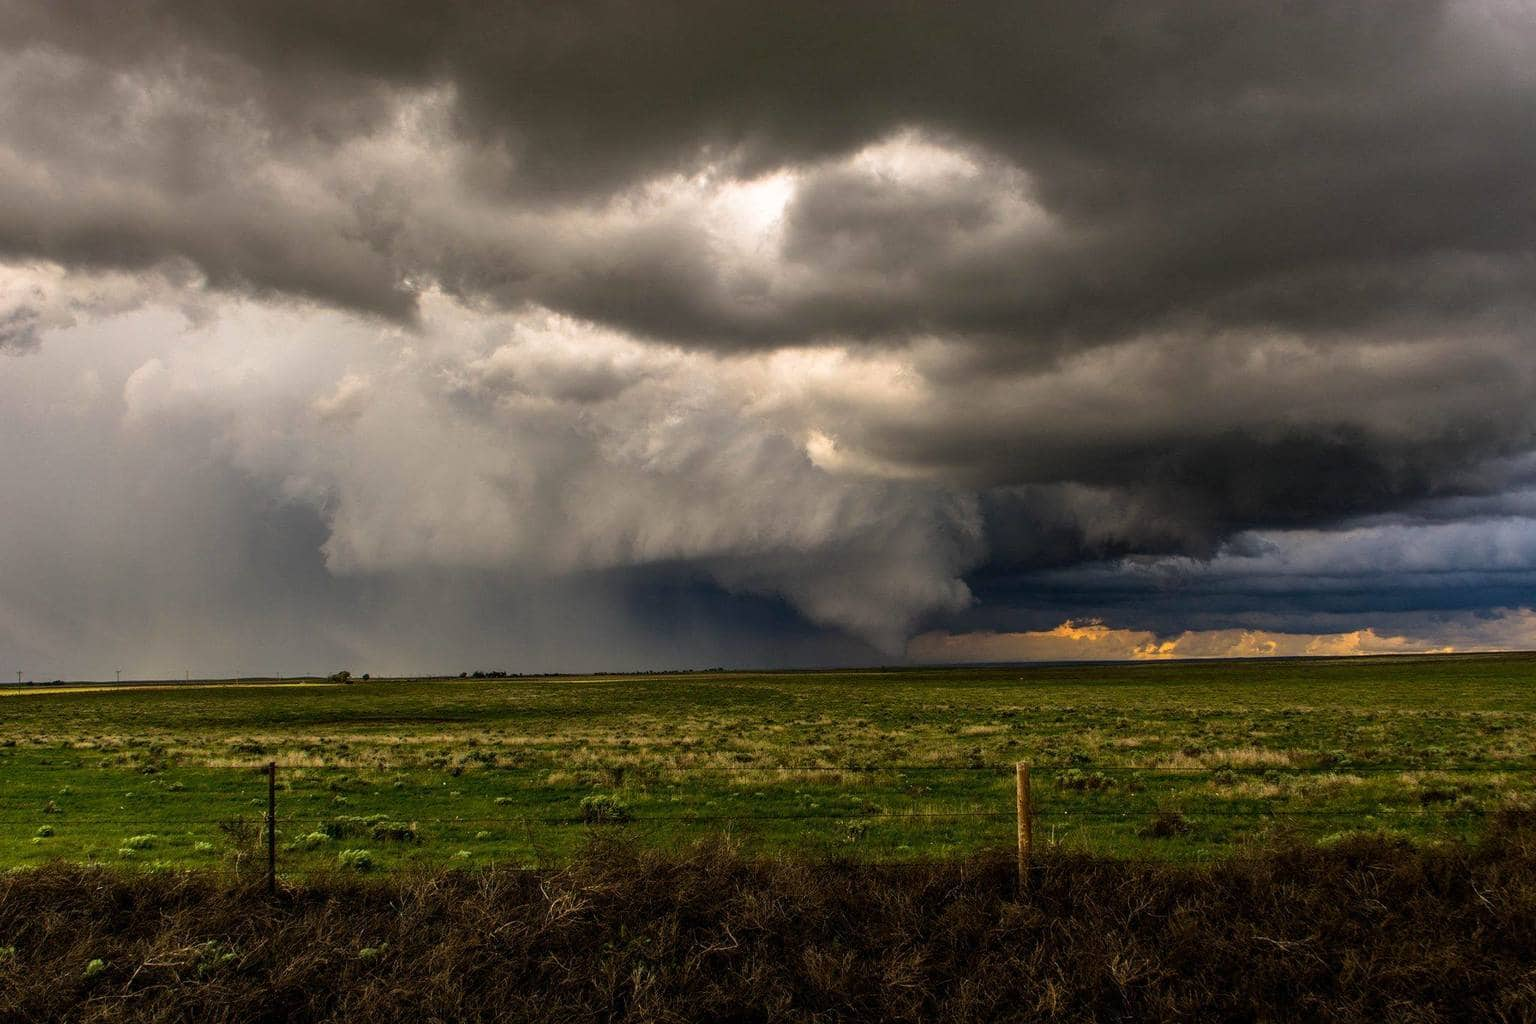 Here is one of my Colorado tornadoes from Saturday's chase.